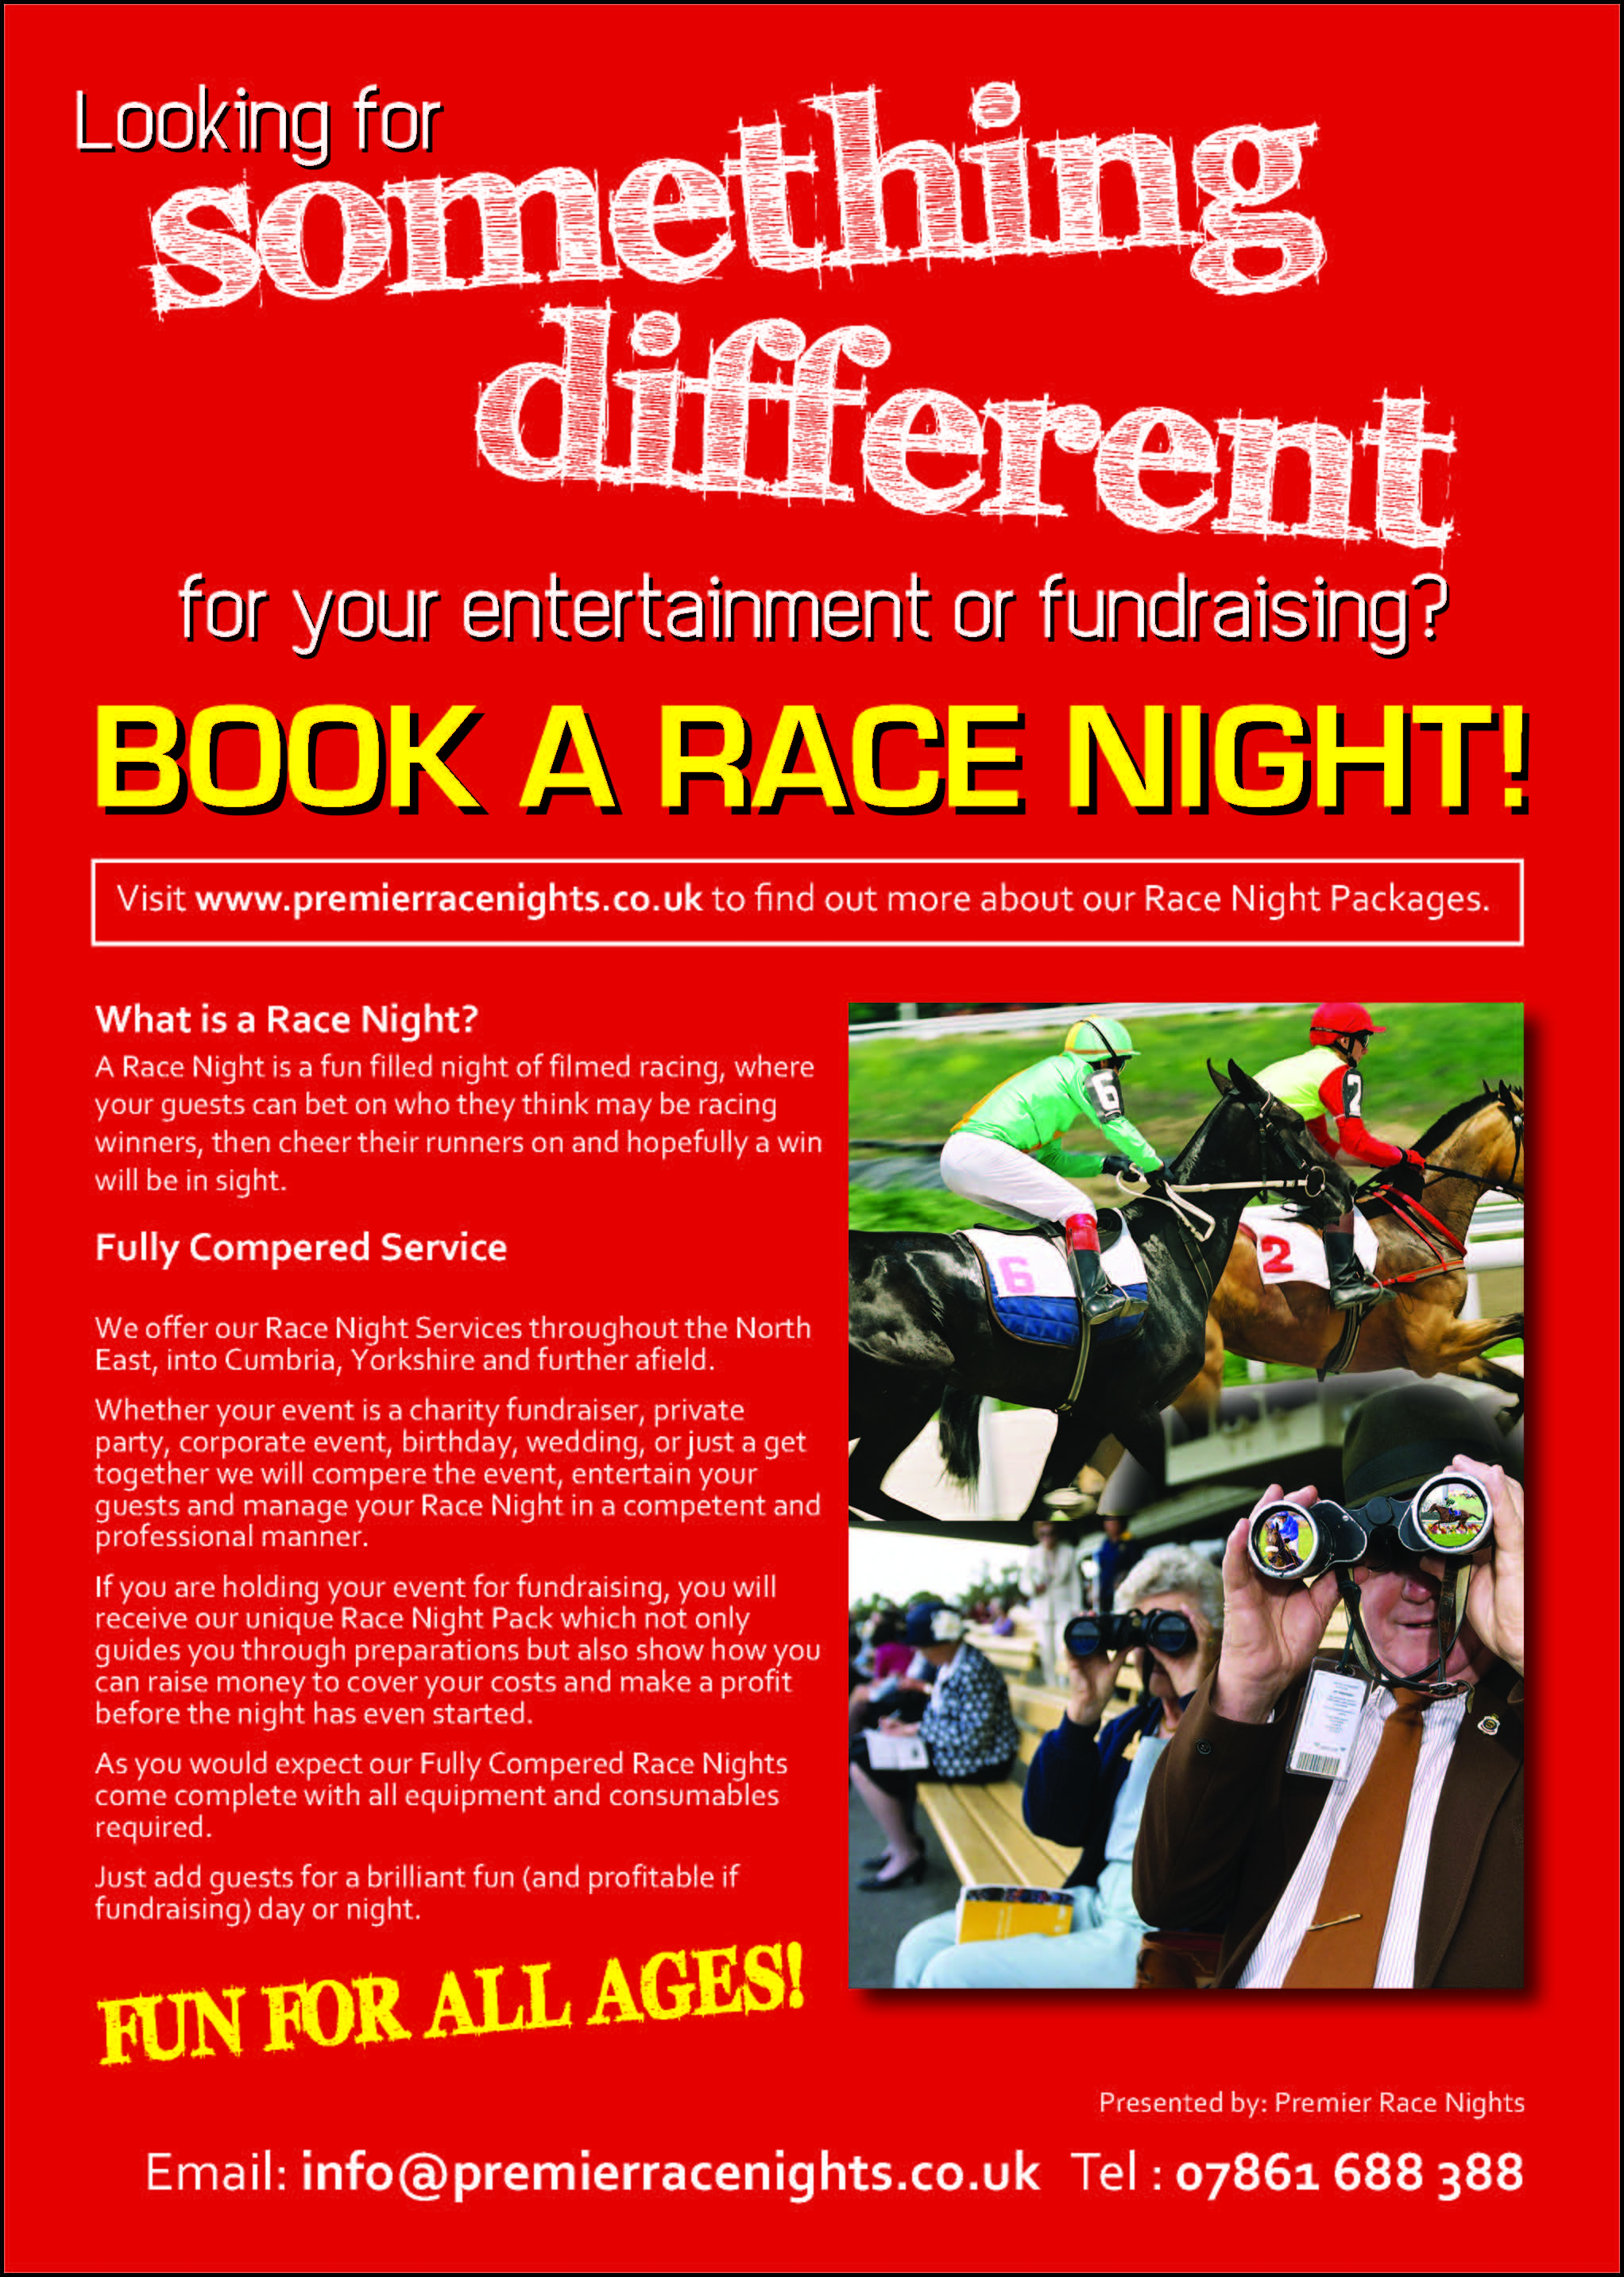 How To Fundraise at a Charity Race Night